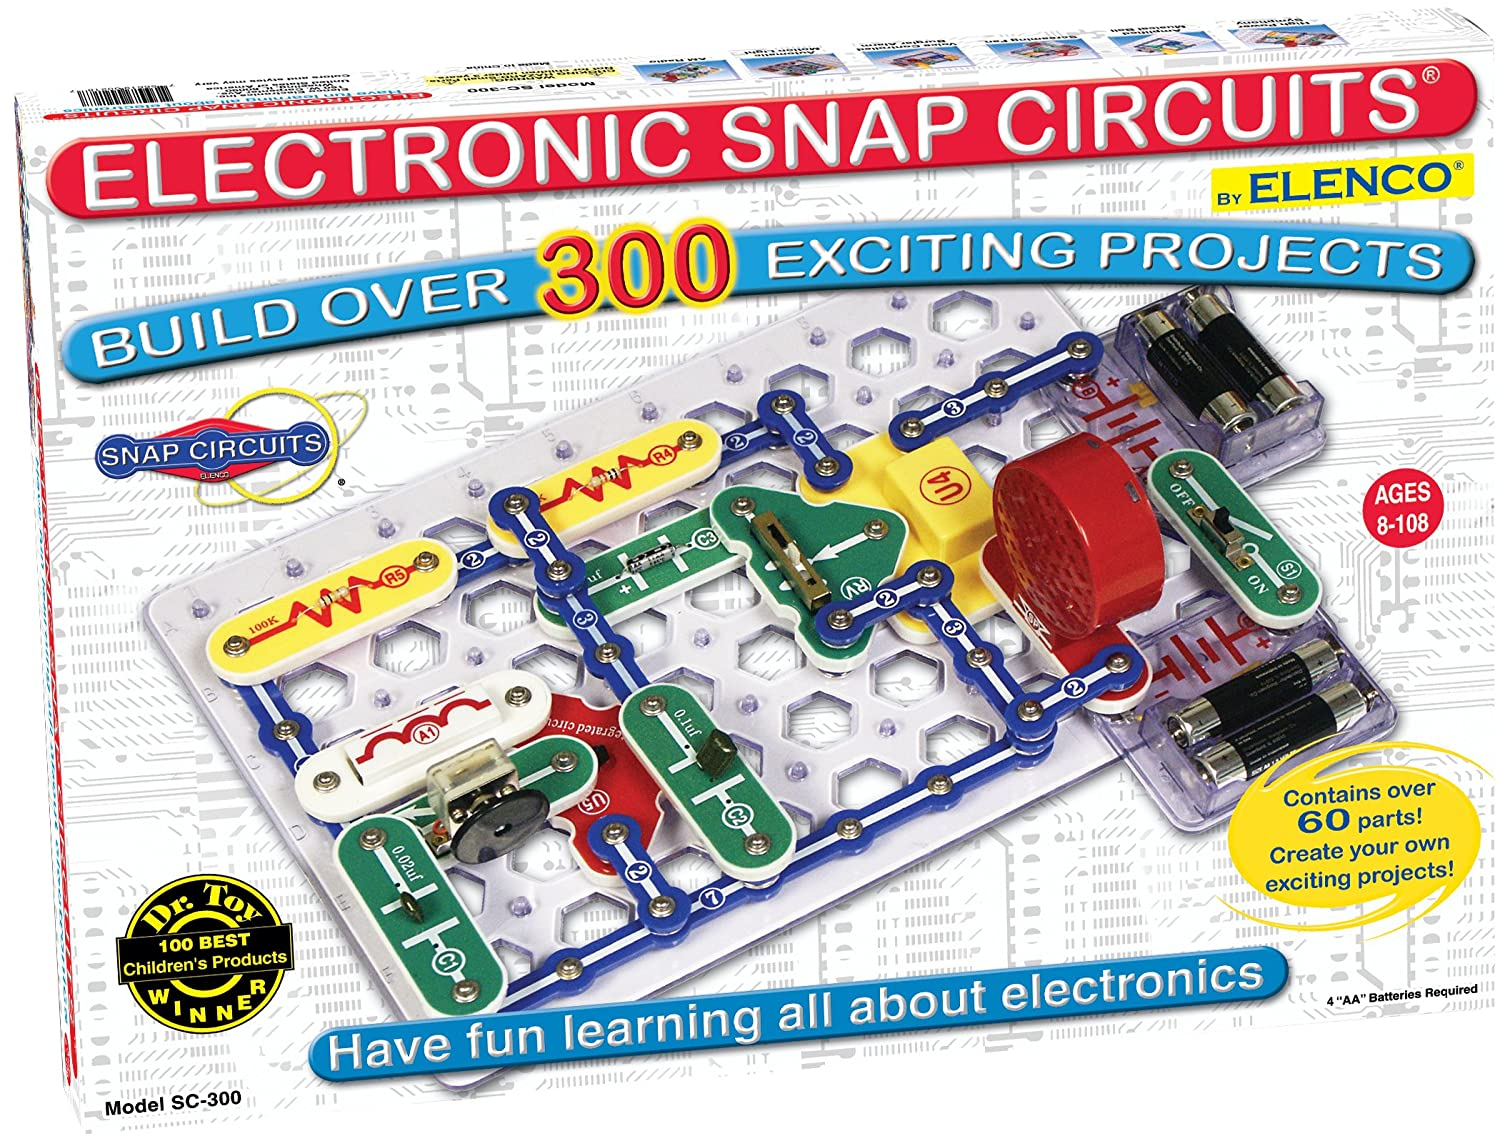 Snap Circuits Classic Sc 300 Electronics Exploration Kit Thermometer Circuit With Receiver And Transmitter Electronic Over Stem Projects 4 Color Project Manual 60 Modules Unlimited Fun